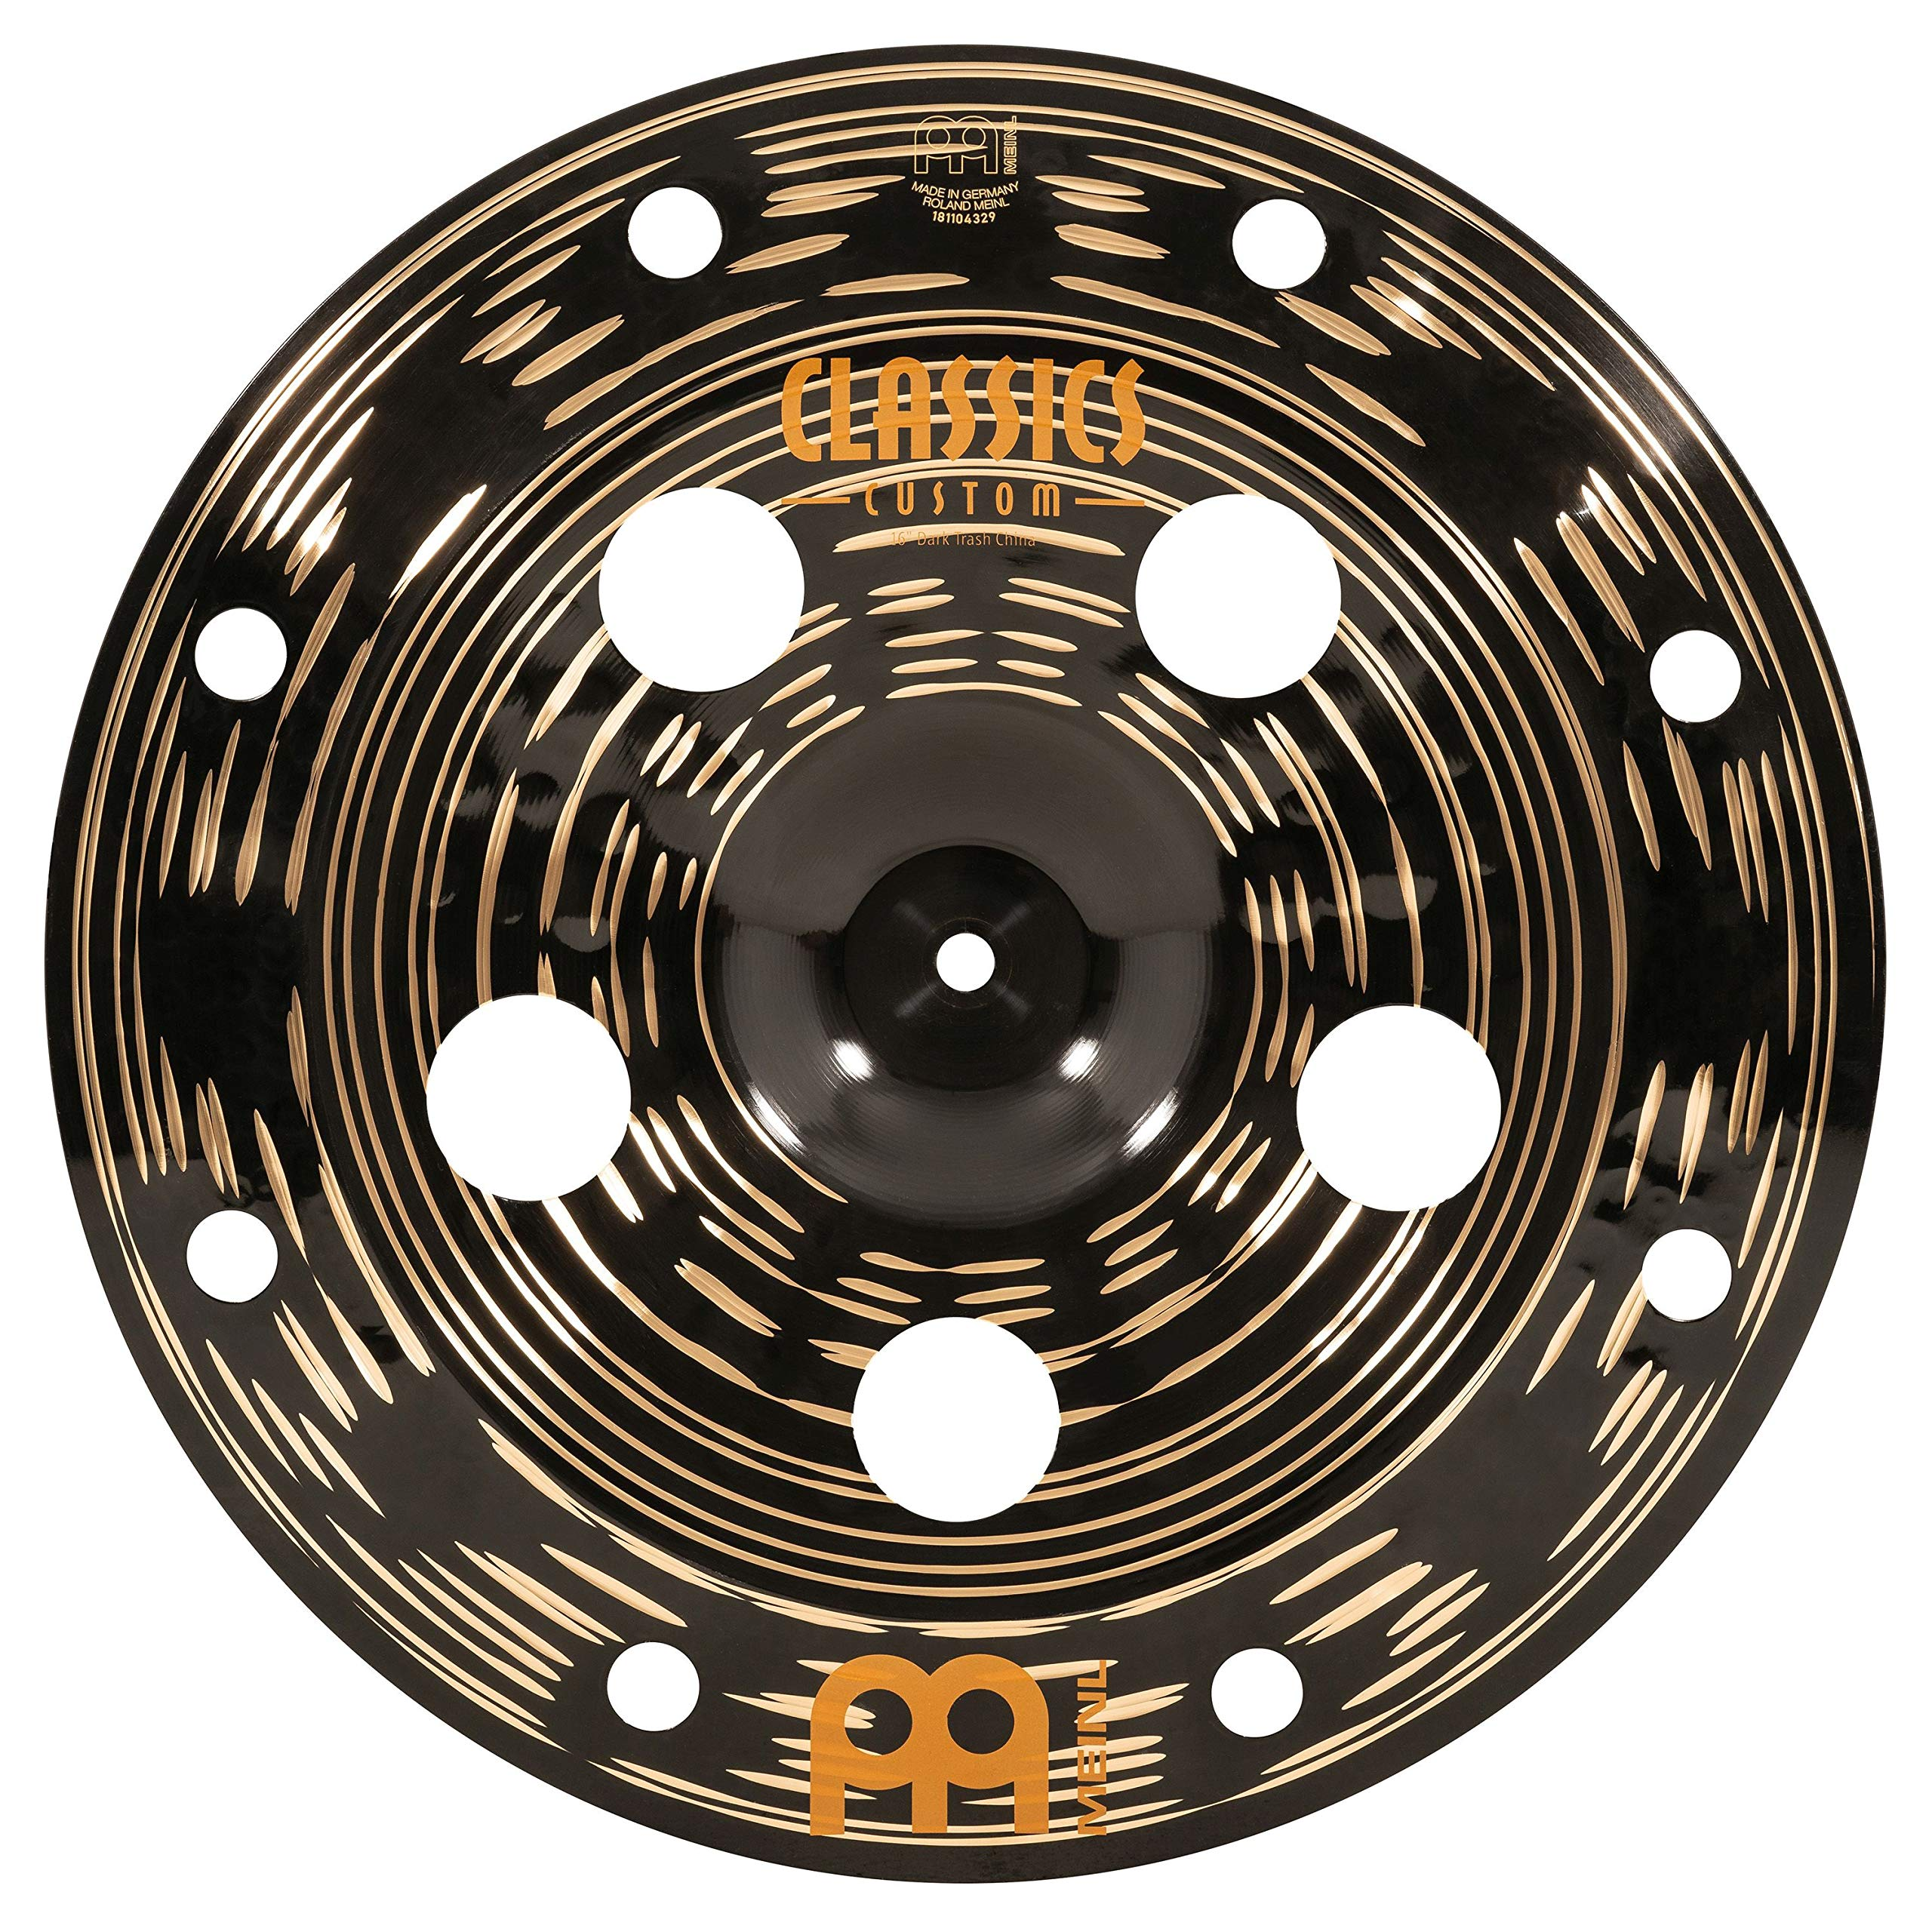 Meinl Cymbals 16'' Trash China Cymbal with Holes - Classics Custom Dark - MADE IN GERMANY, 2-YEAR WARRANTY CC16DATRCH